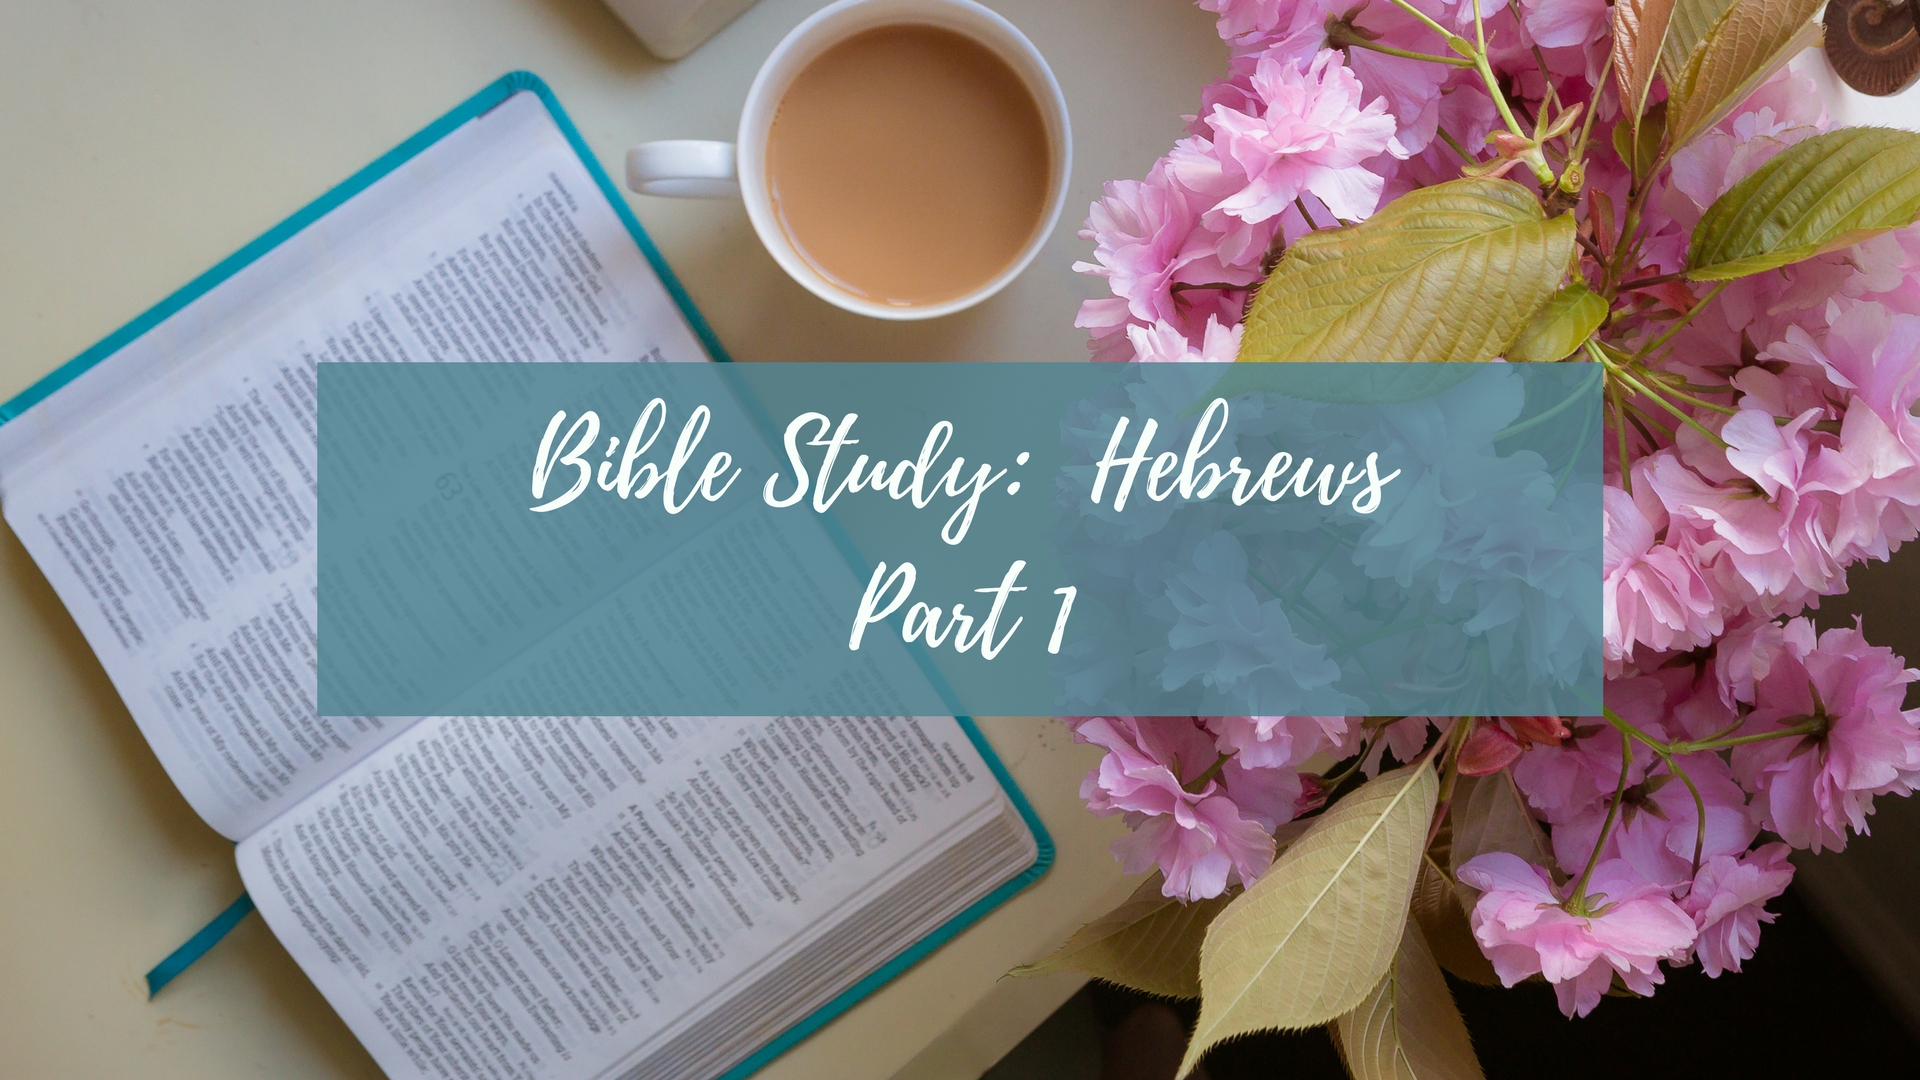 CLS Bible Study Hebrews Part 1.jpg